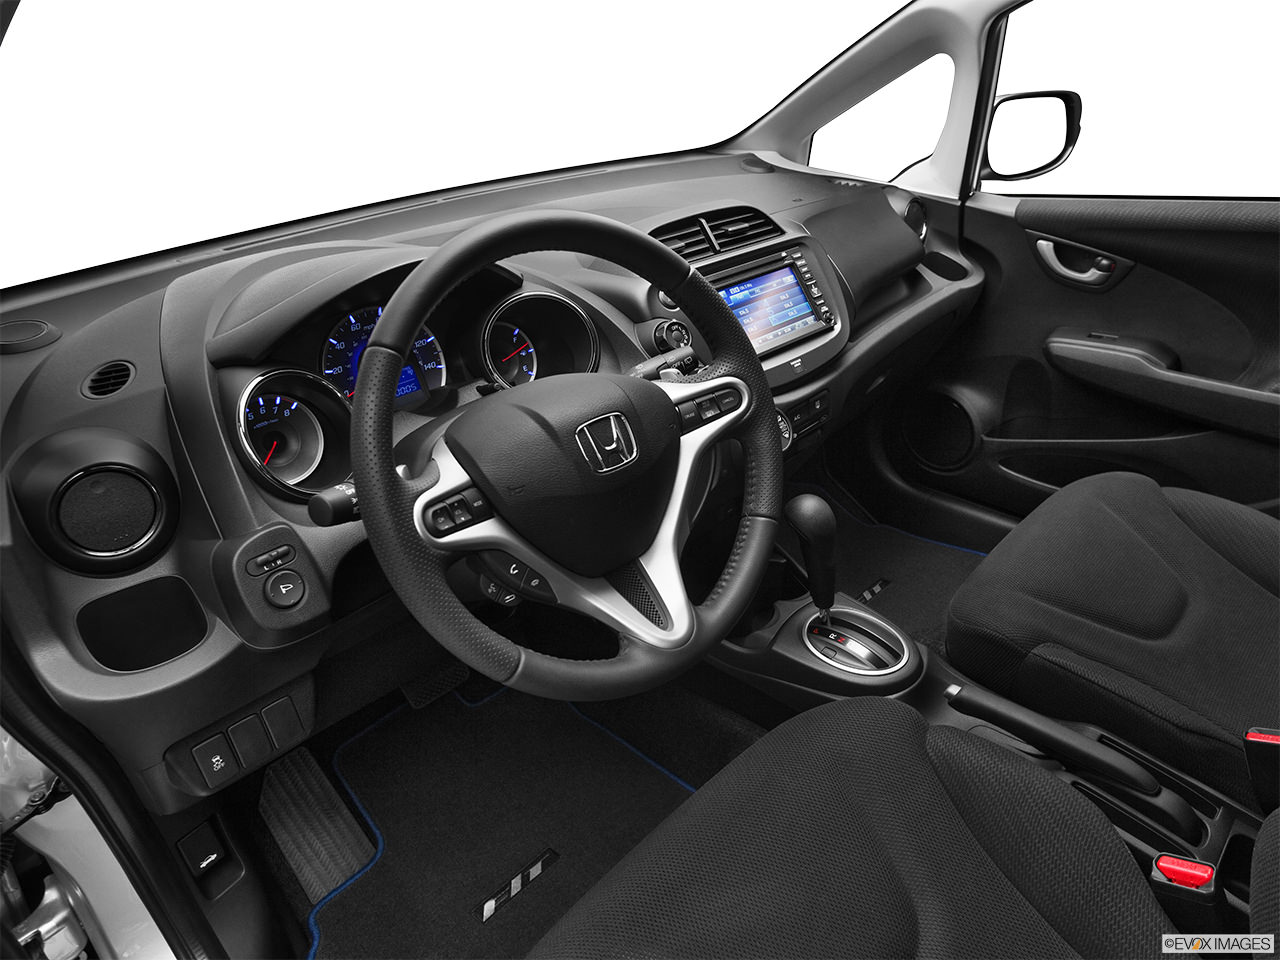 Honda Fit EV 2012 Interior